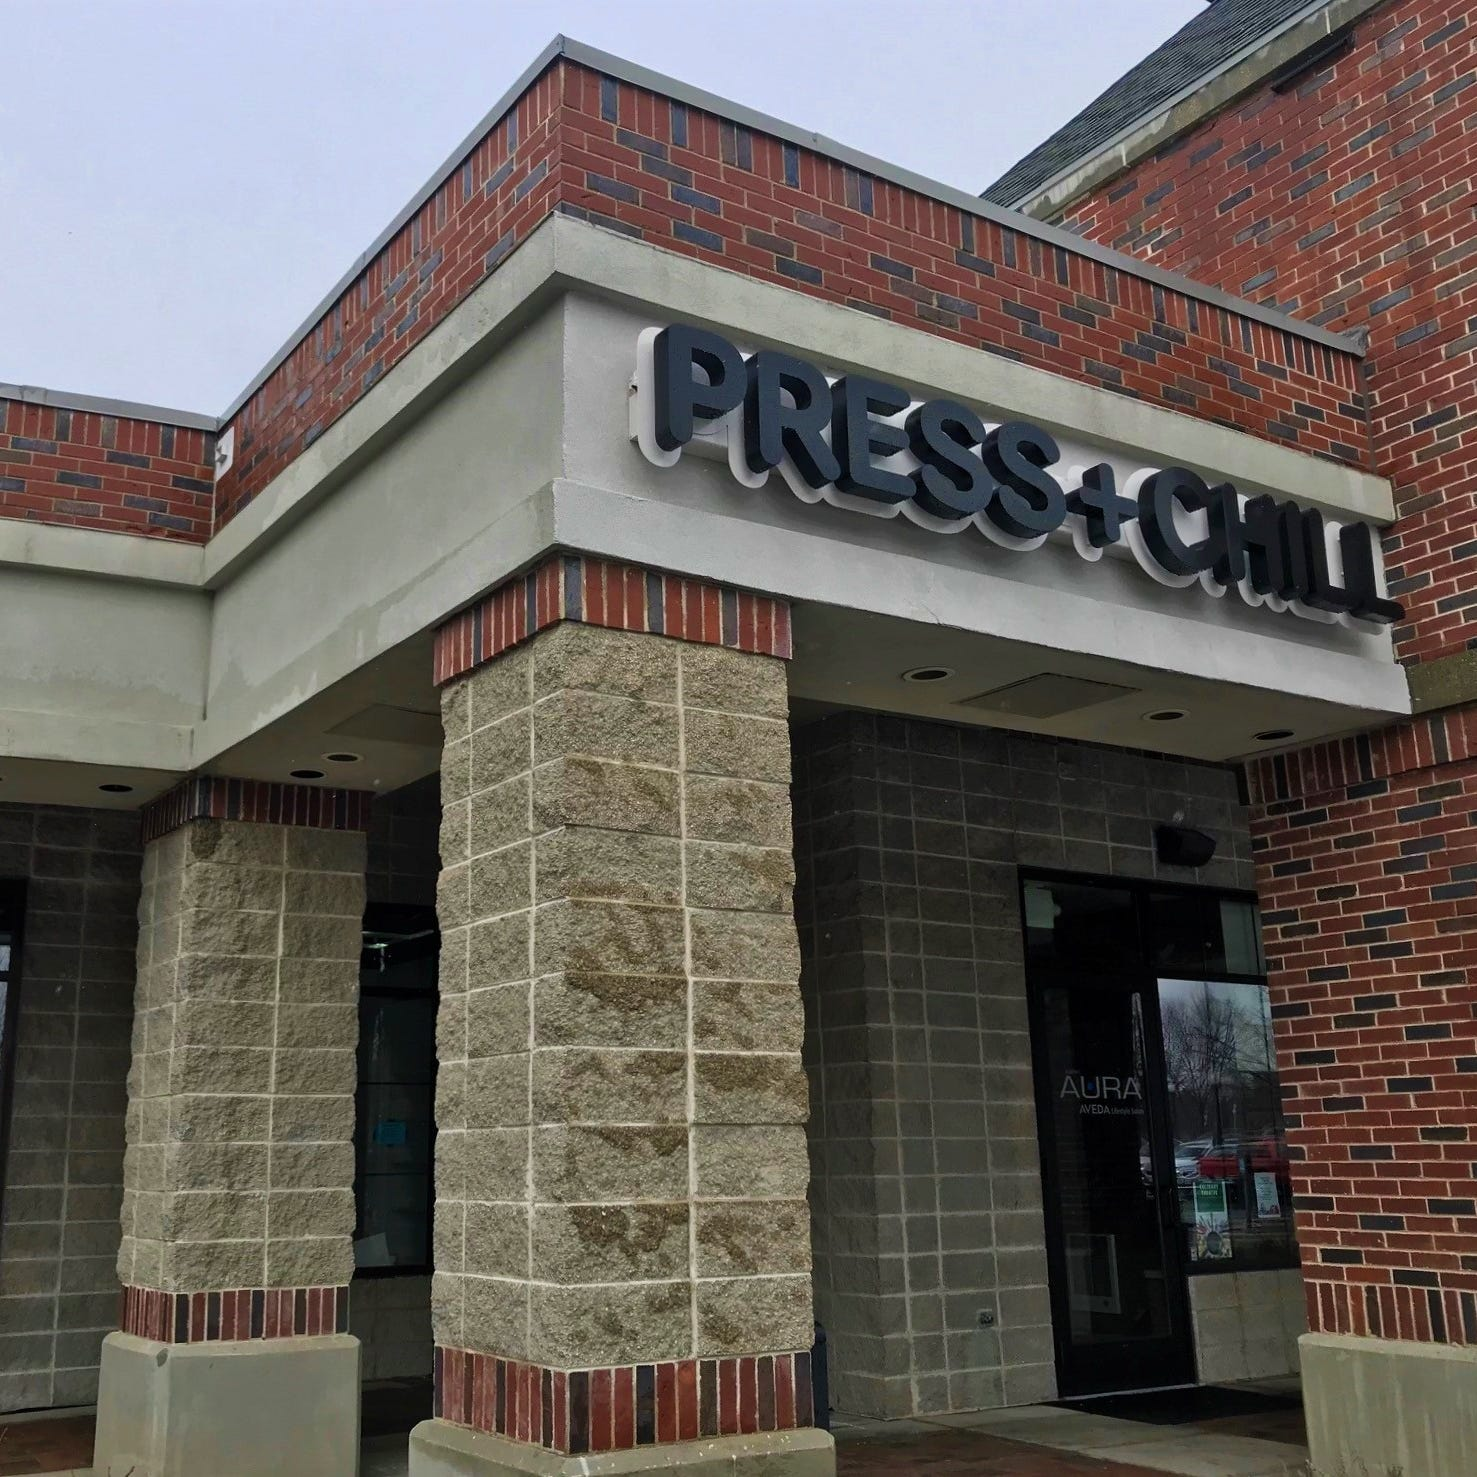 Opening in May, Kohler's Press + Chill will offer juice, salads and more| Streetwise